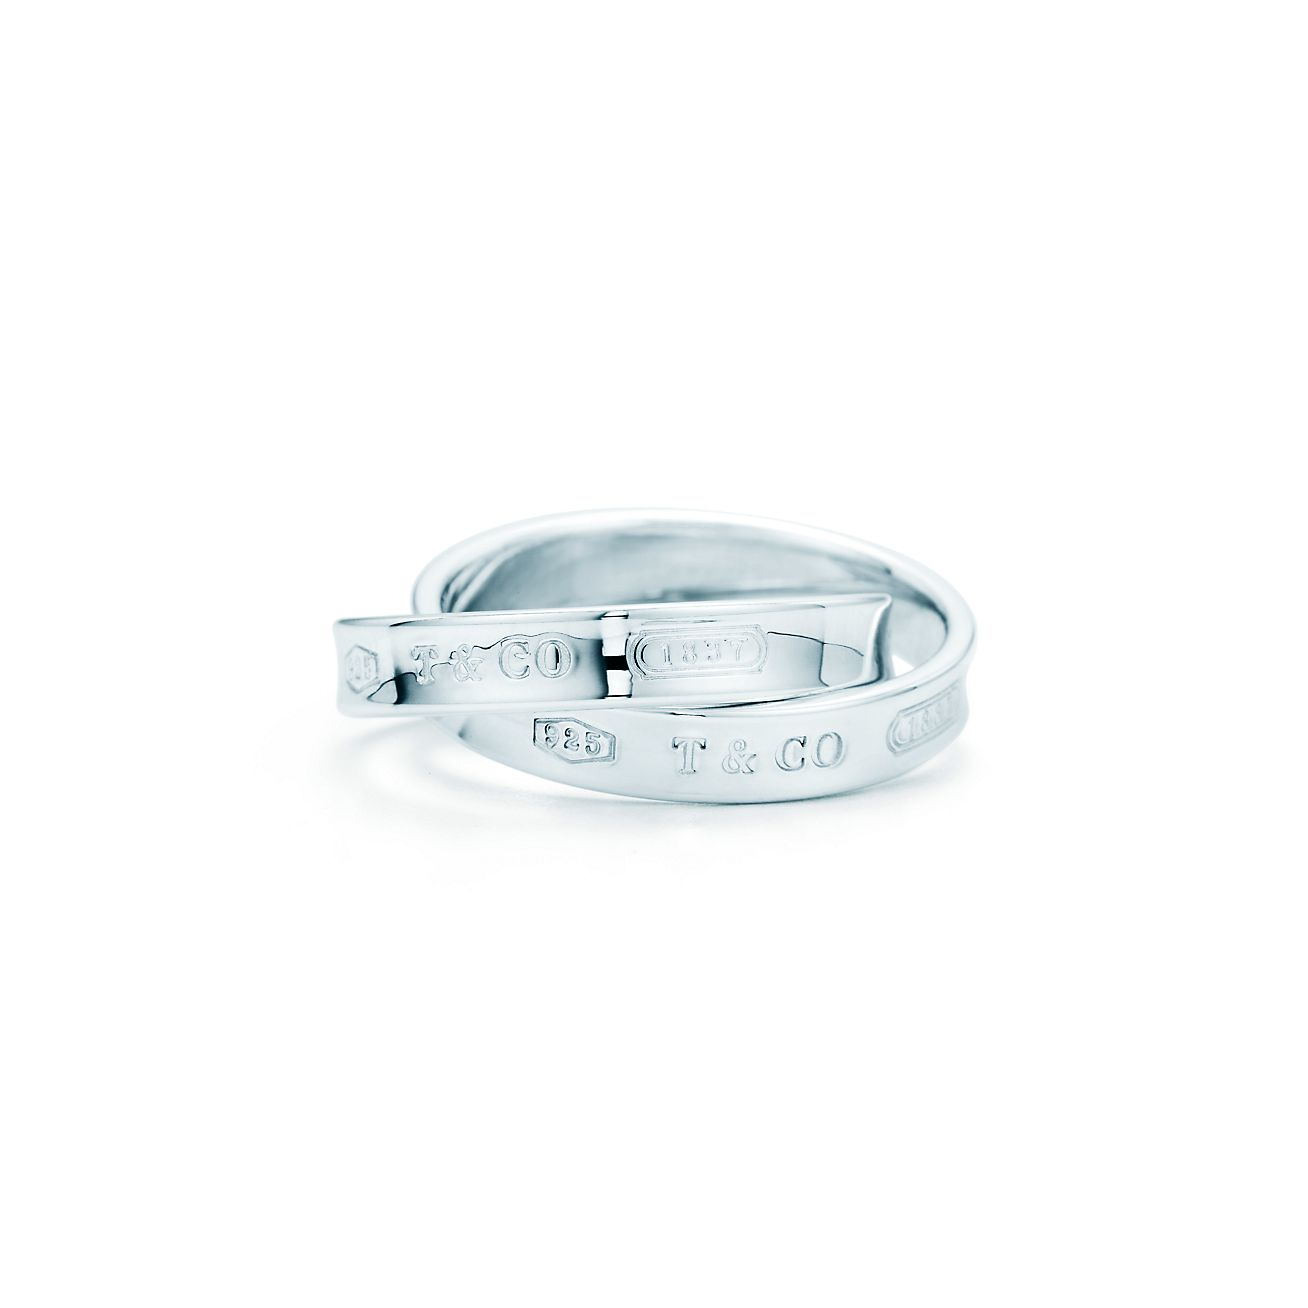 Tiffany 1837 Interlocking Circles Ring In Sterling Silver